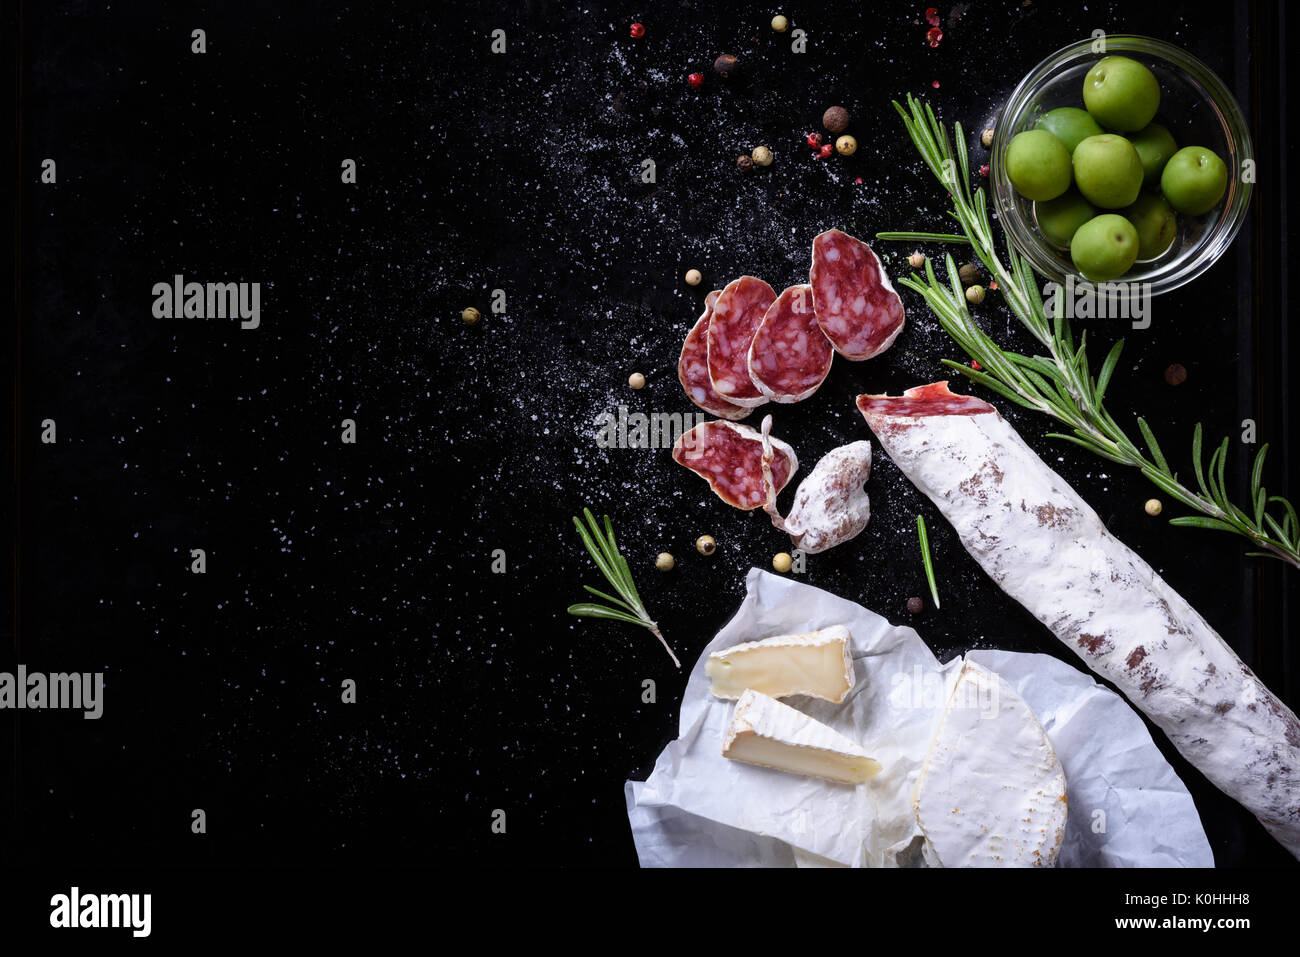 Cured Fuet cut into slices with cheese and olives. Salami sausage snack. Copy space, above view, dark background. - Stock Image